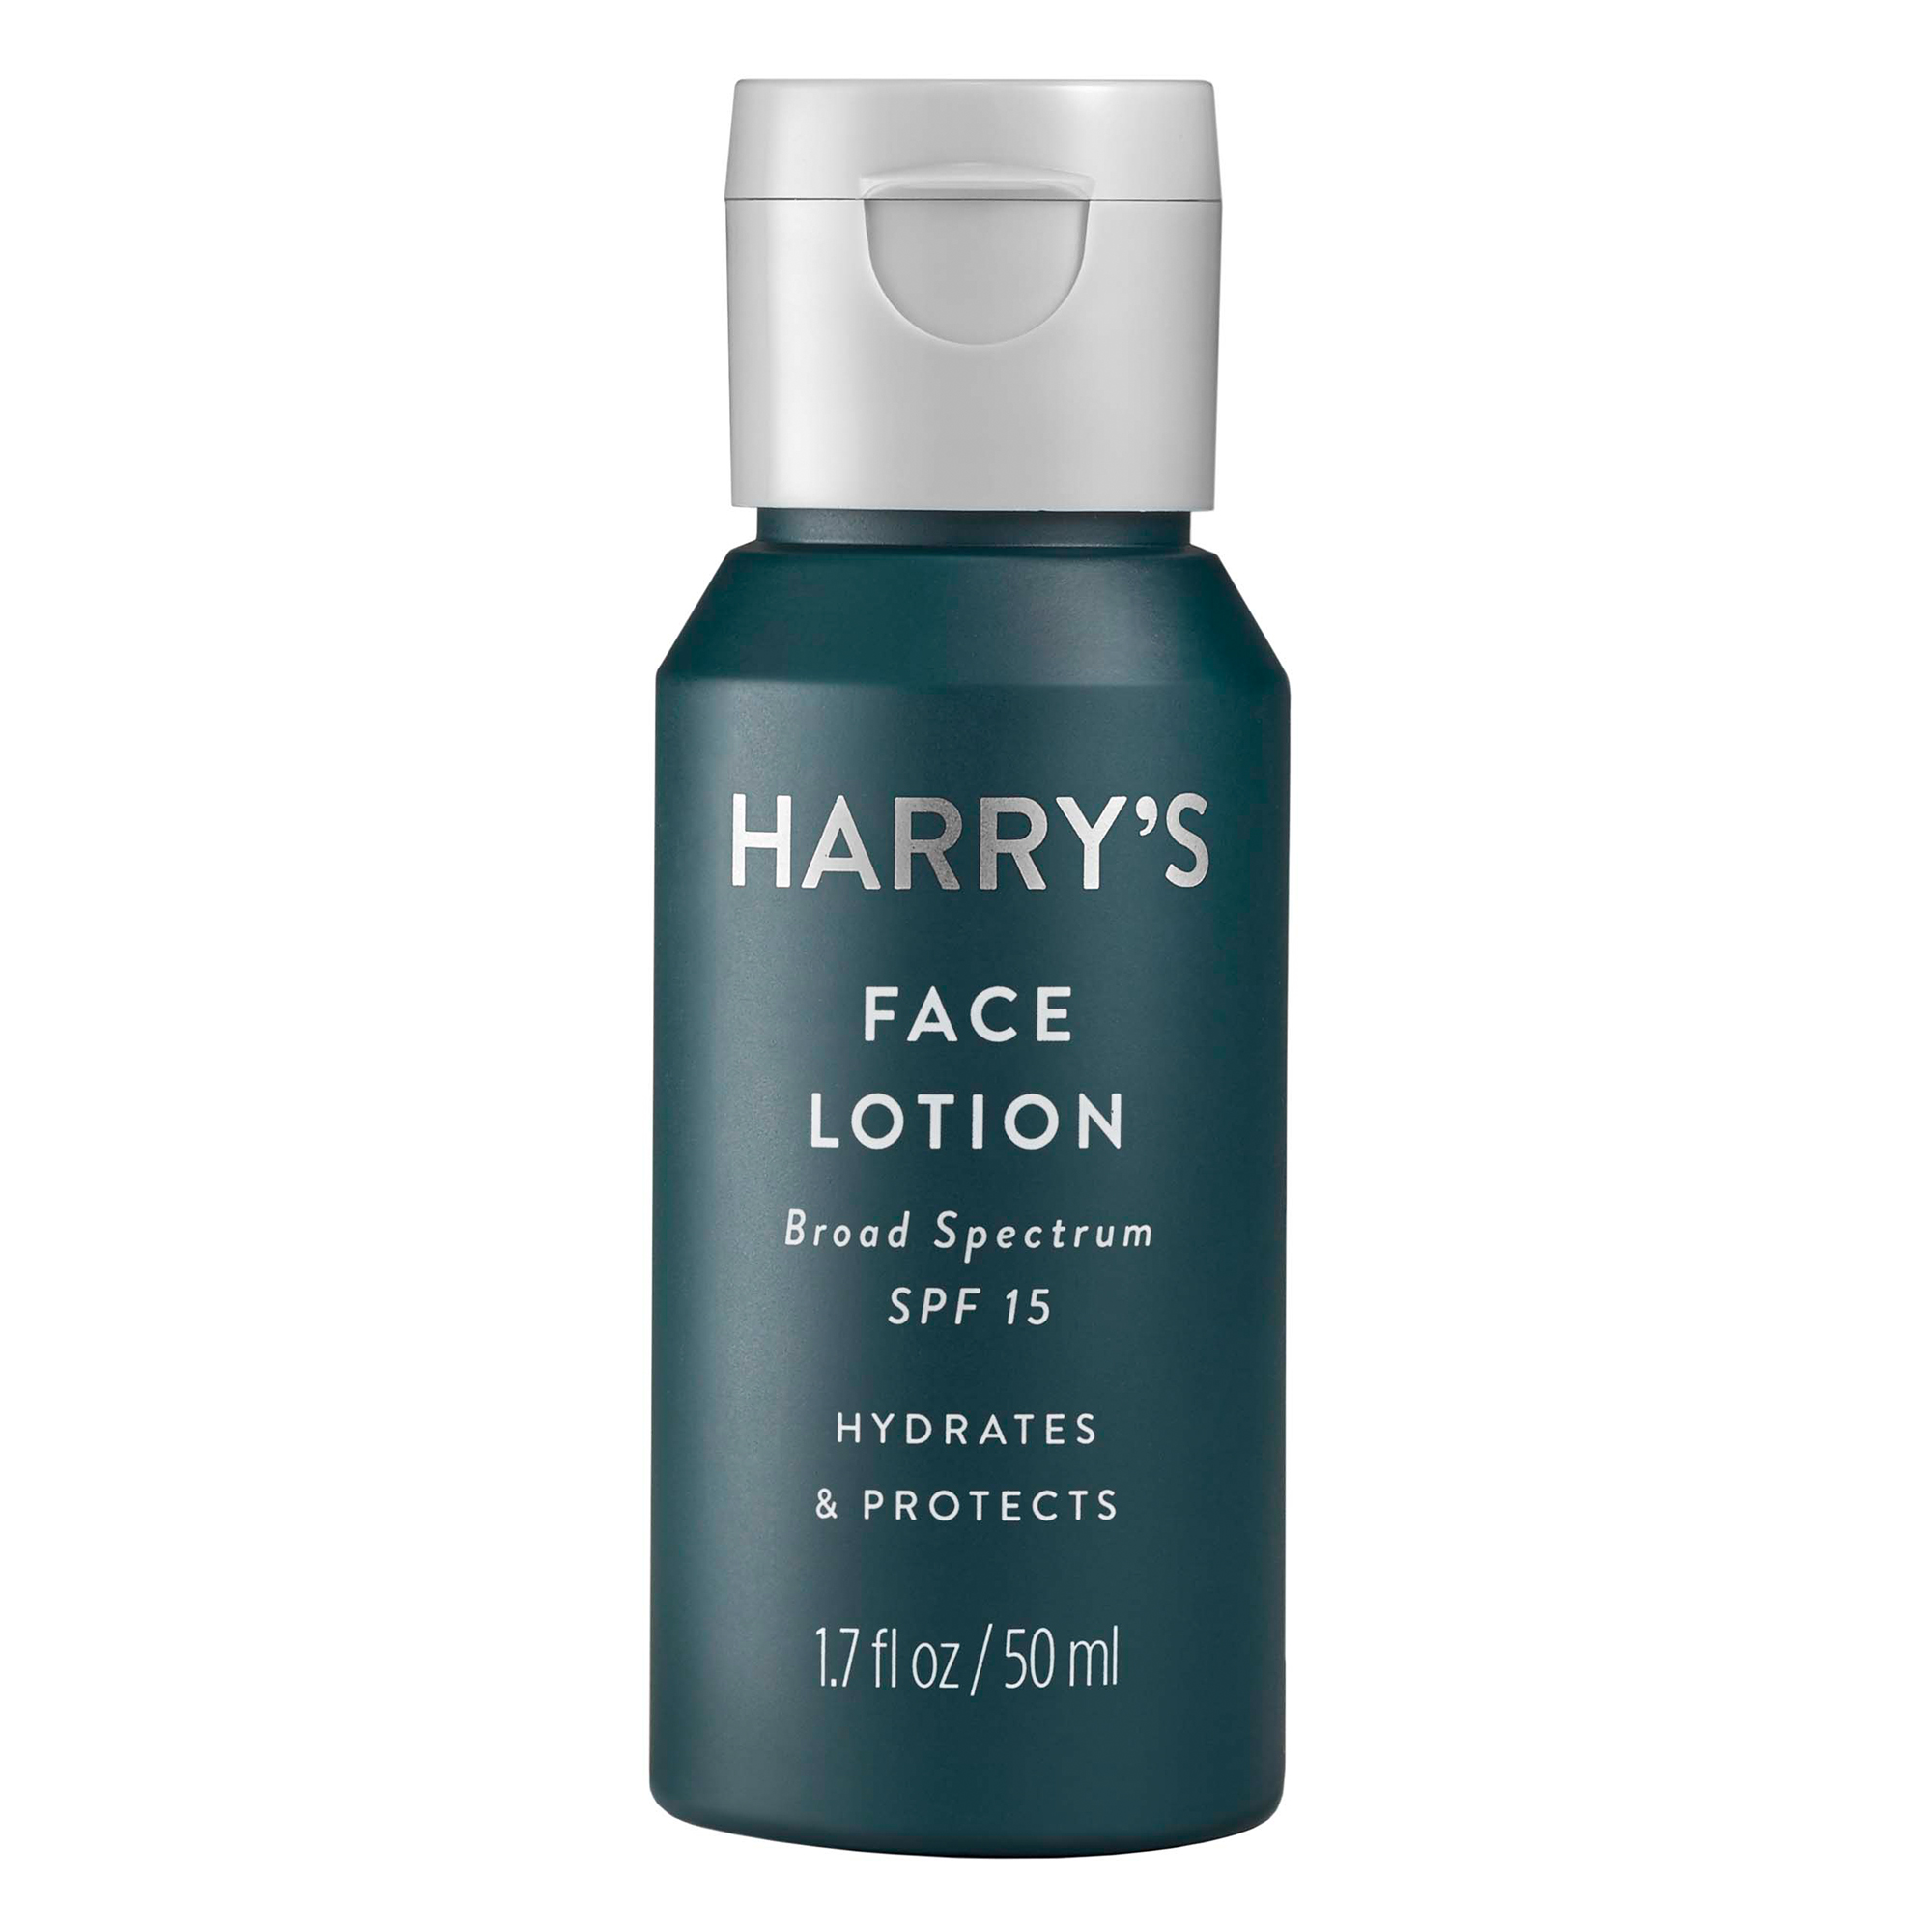 Harry's Men's Face Lotion SPF 15 – 1.7oz